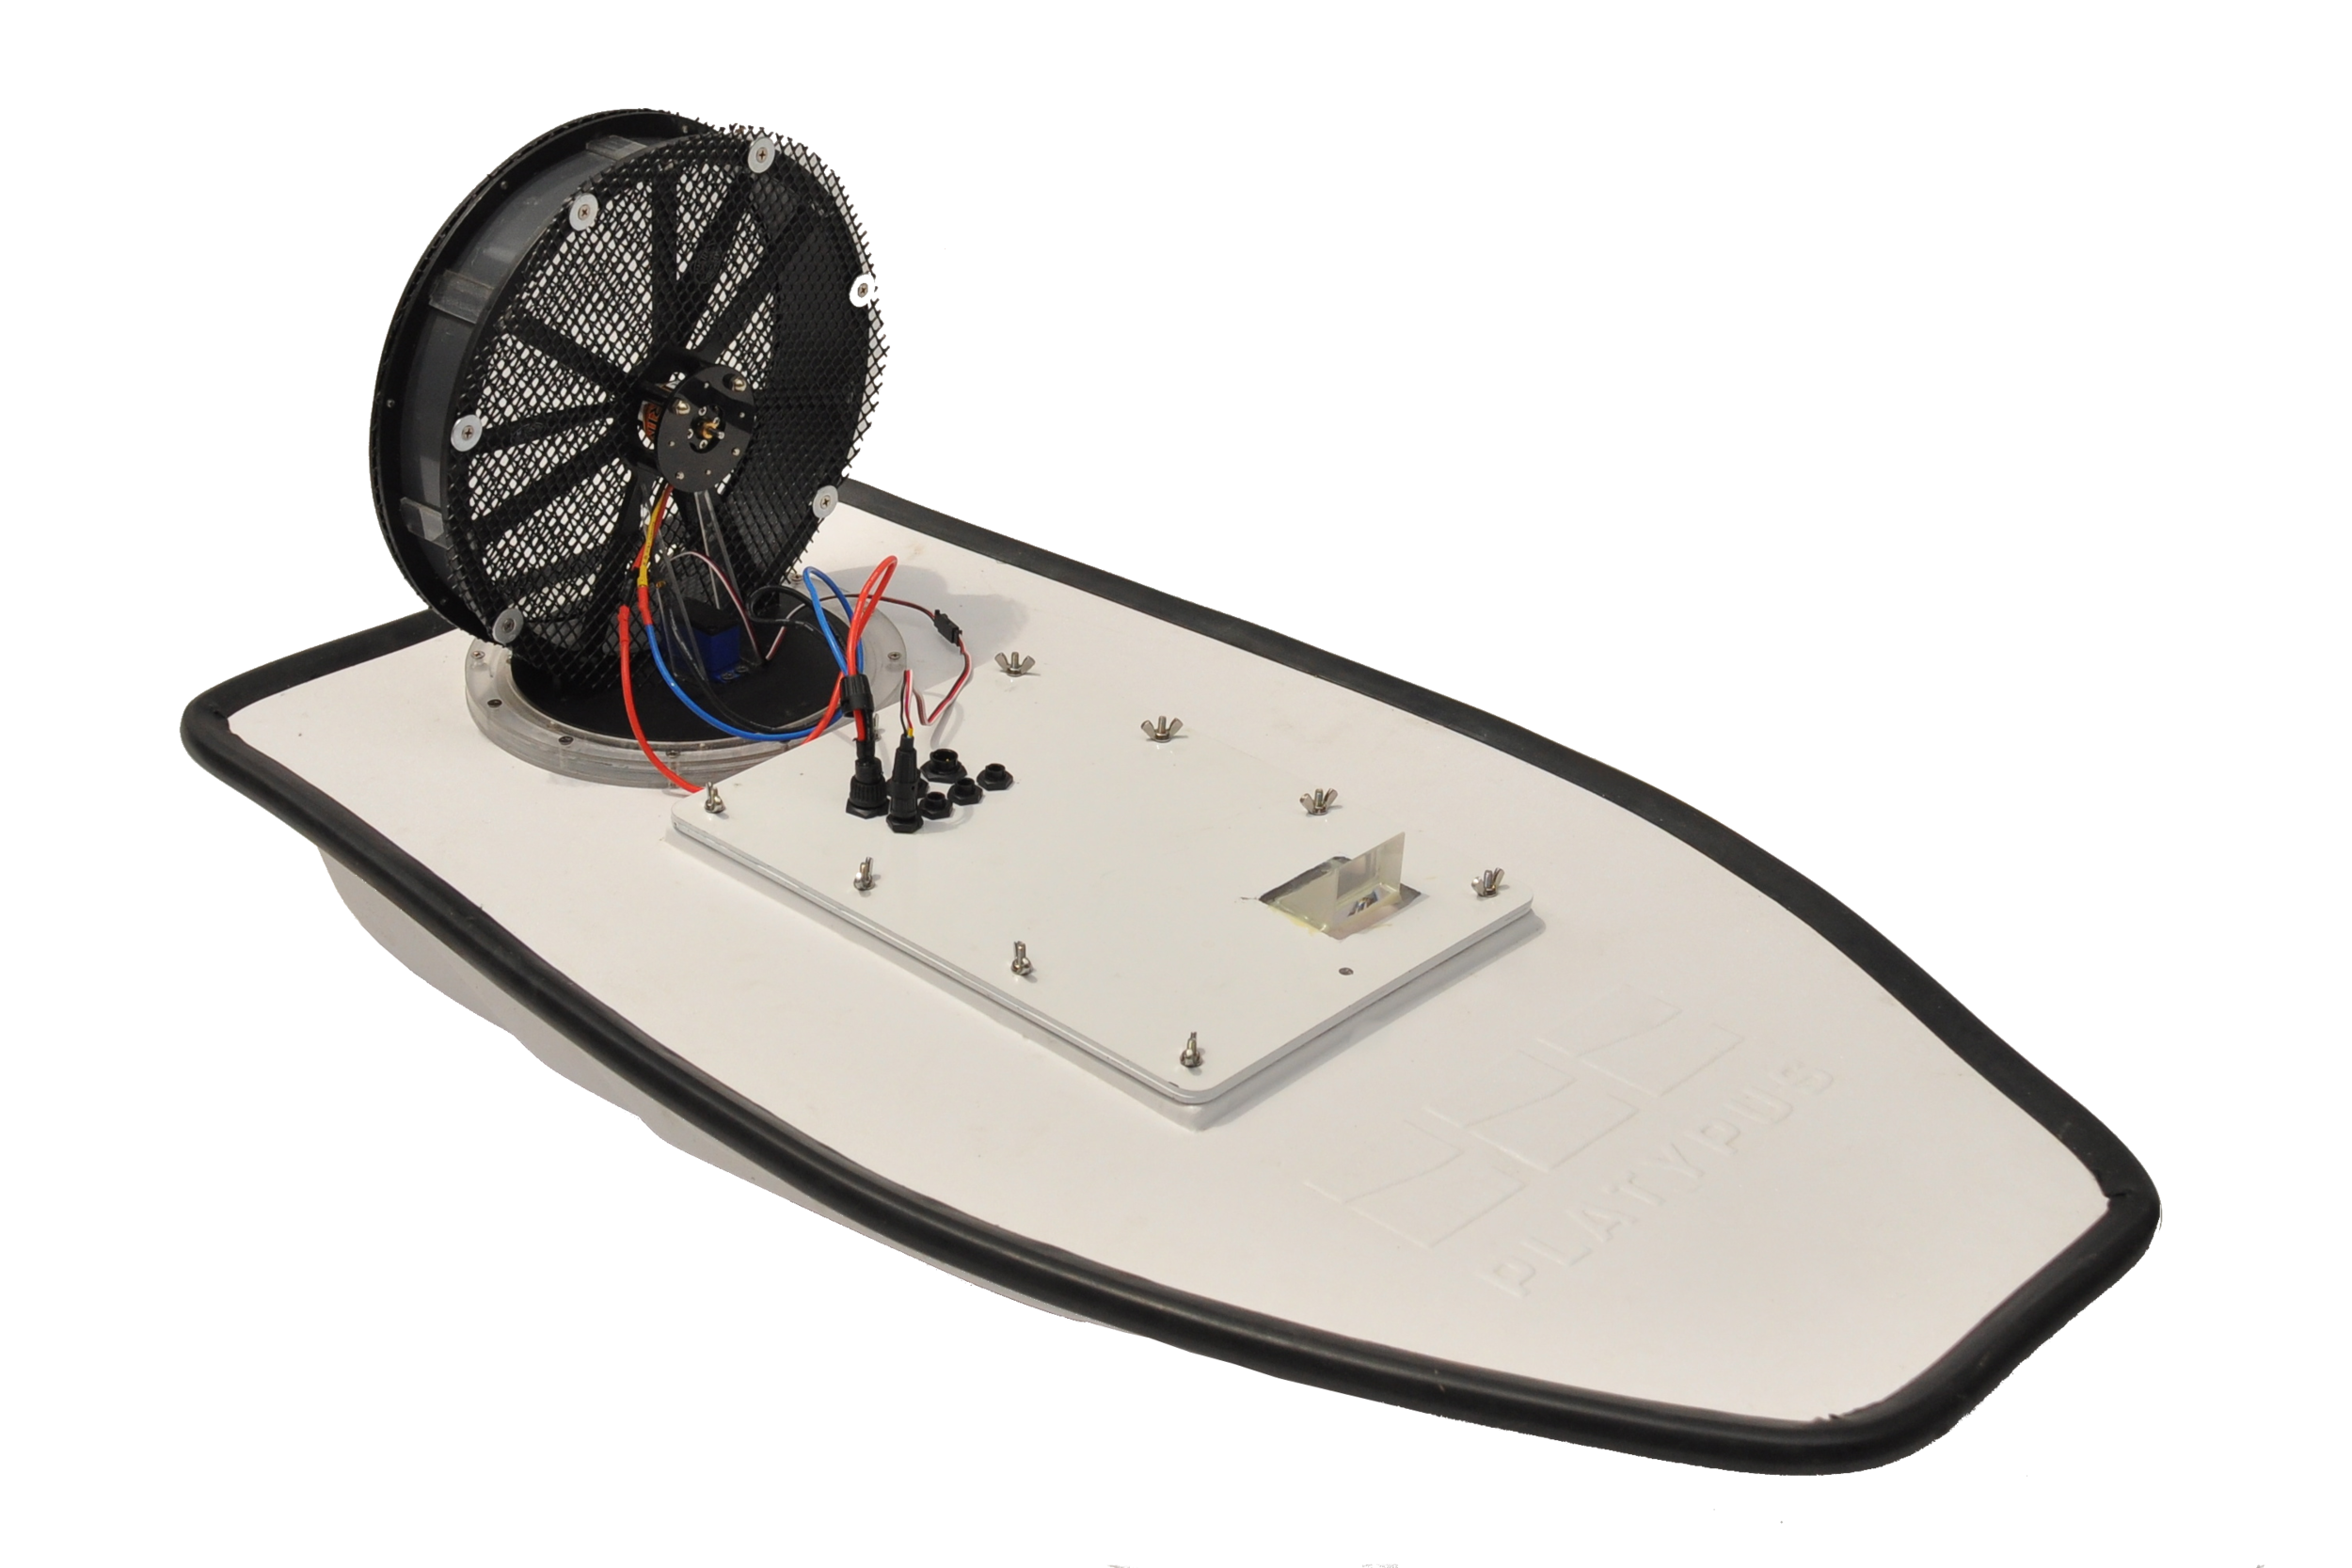 The Lutra Airboat